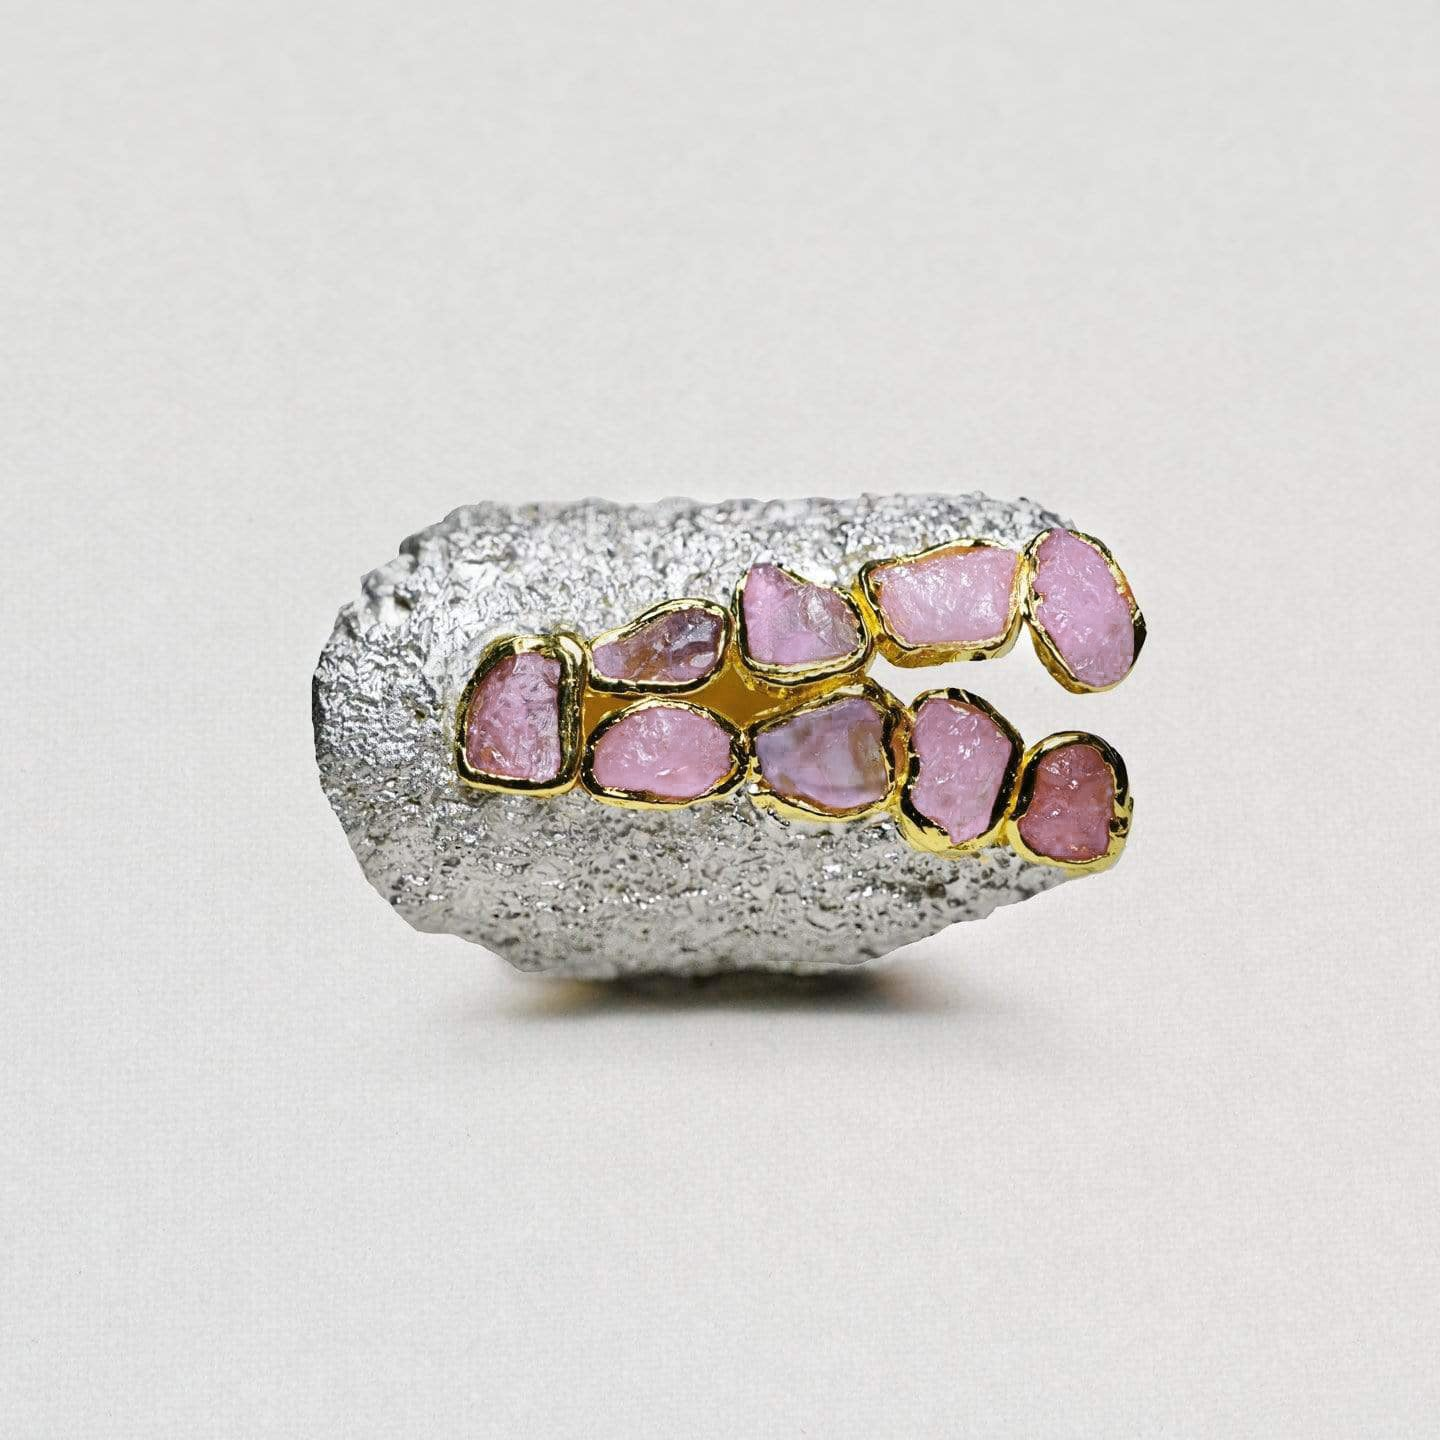 Siriena Ring, Gold, Handmade, Rhodium, Ruby, silver, spo-disabled, StoneColor:PinkRuby, Style:Everyday, Type:StoneCandyScattered Ring